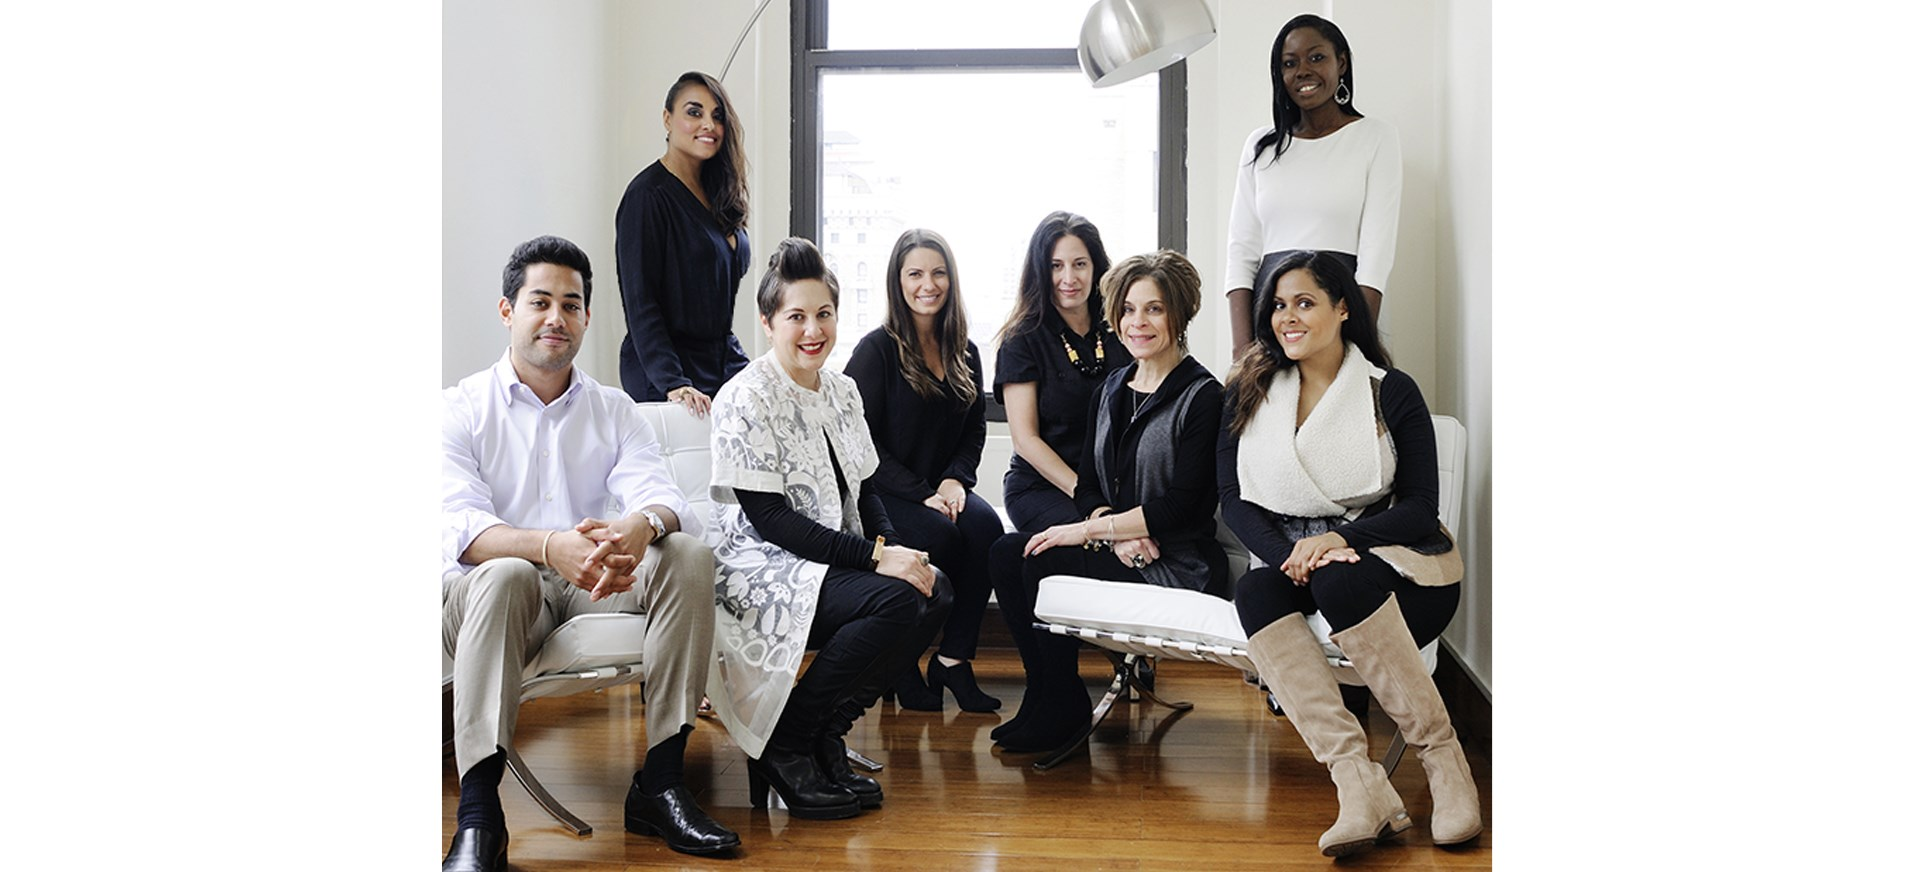 TURA NYC TEAM